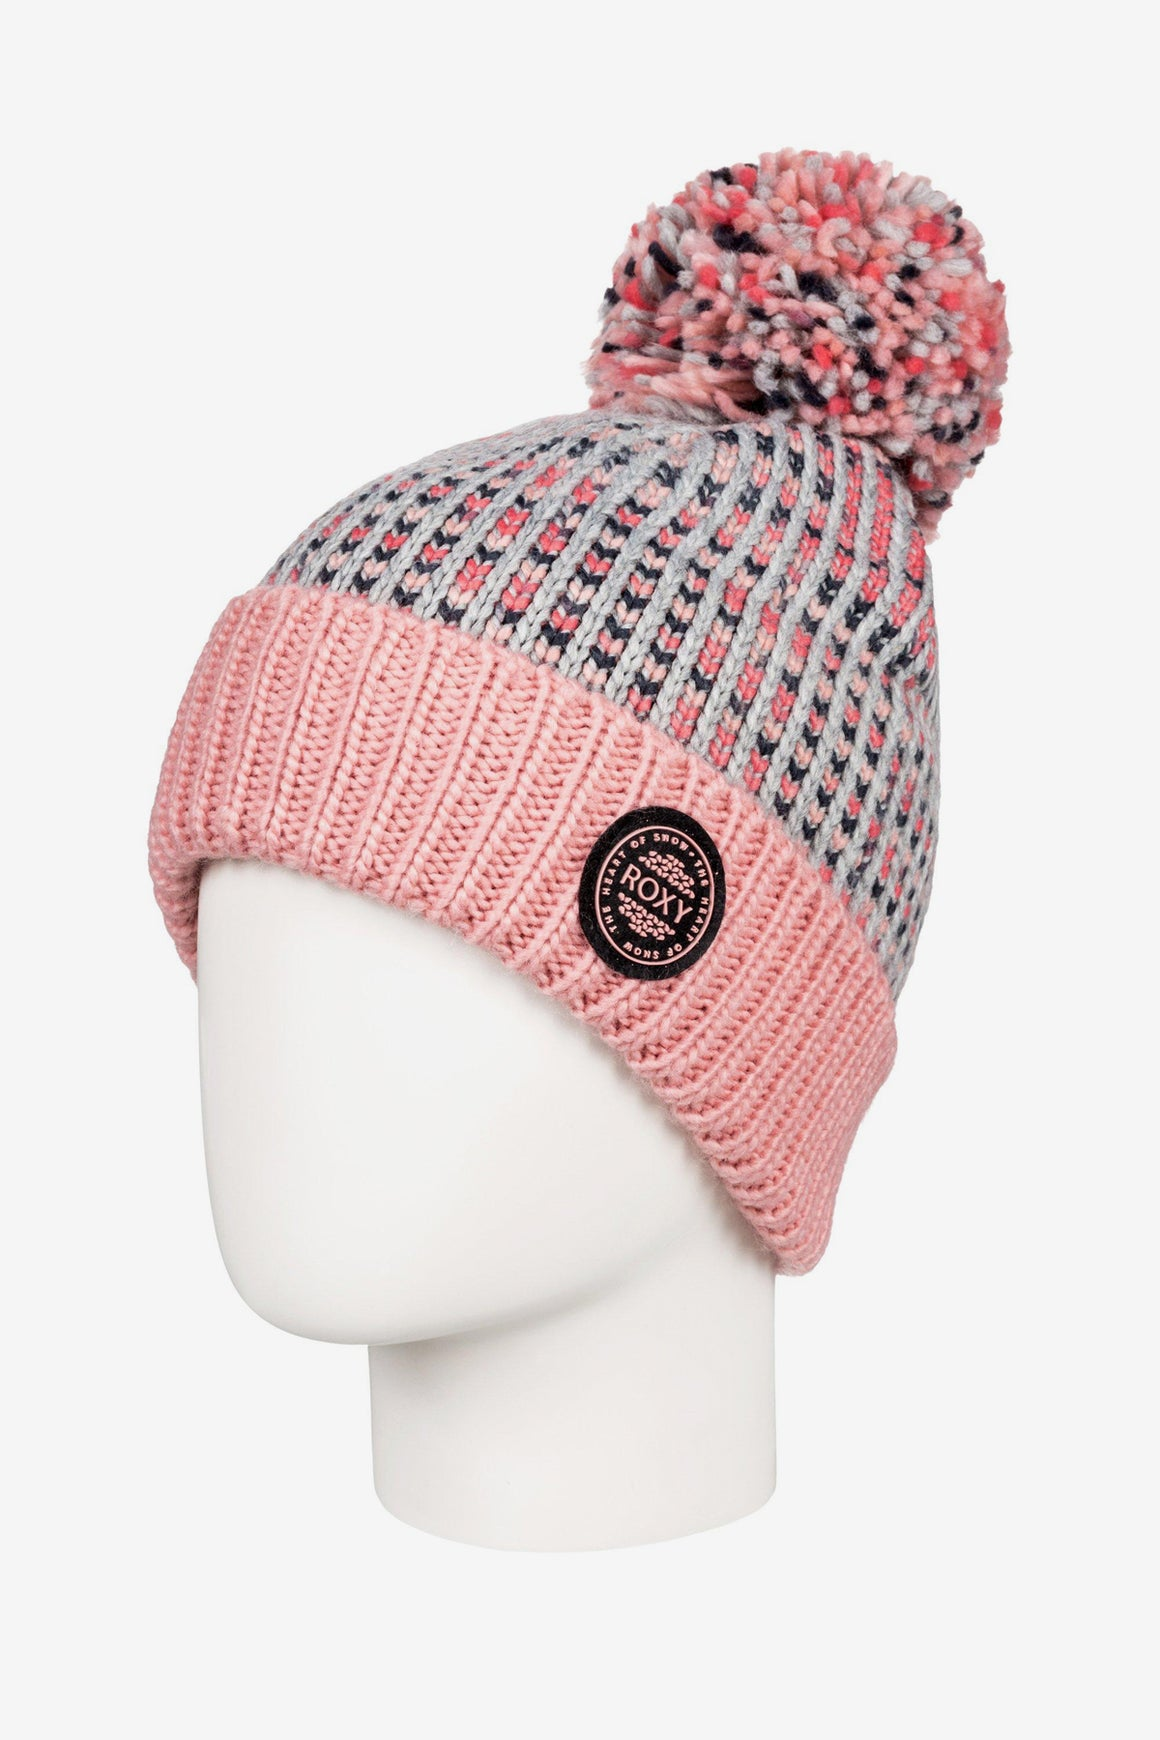 Roxy Snowflurry Pom-Pom Beanie - Warm Heather Grey